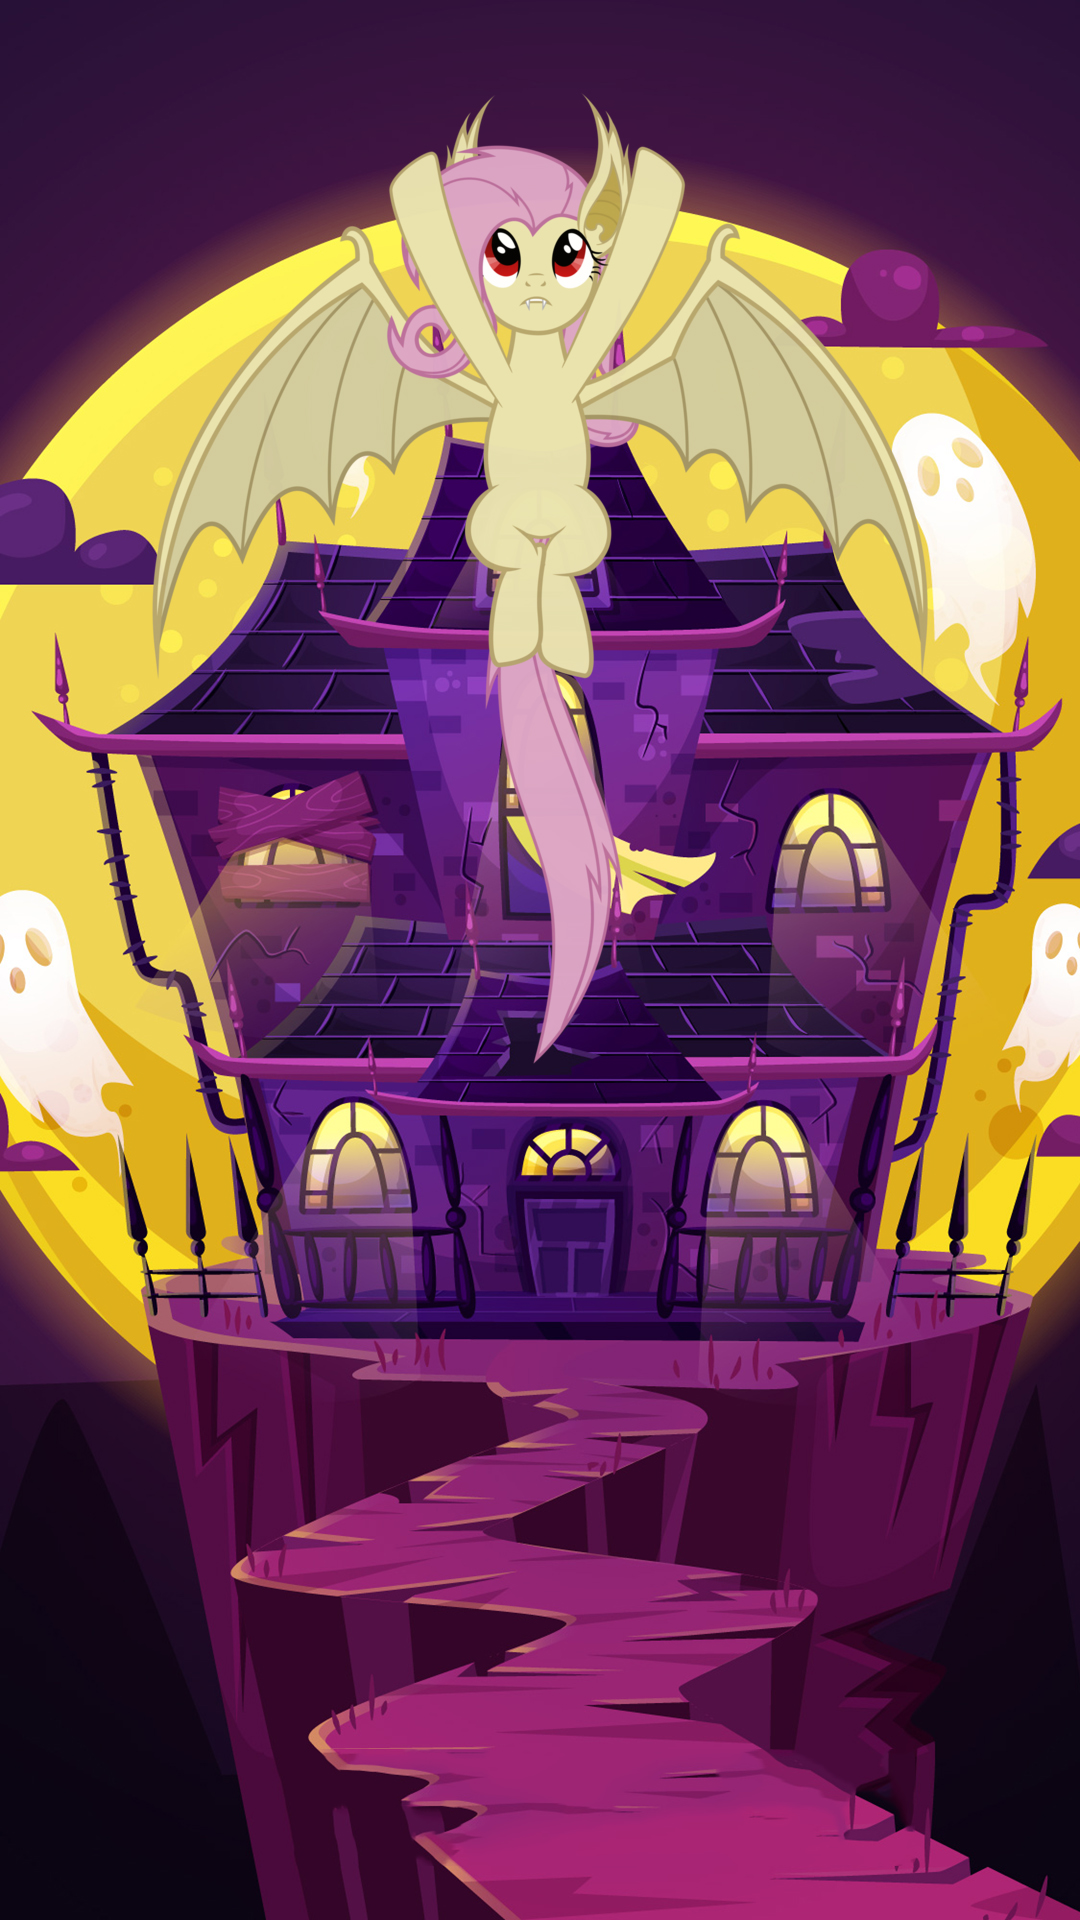 Cute Love Dolls Hd Wallpapers Cute Halloween Phone Wallpapers With My Little Ponies As